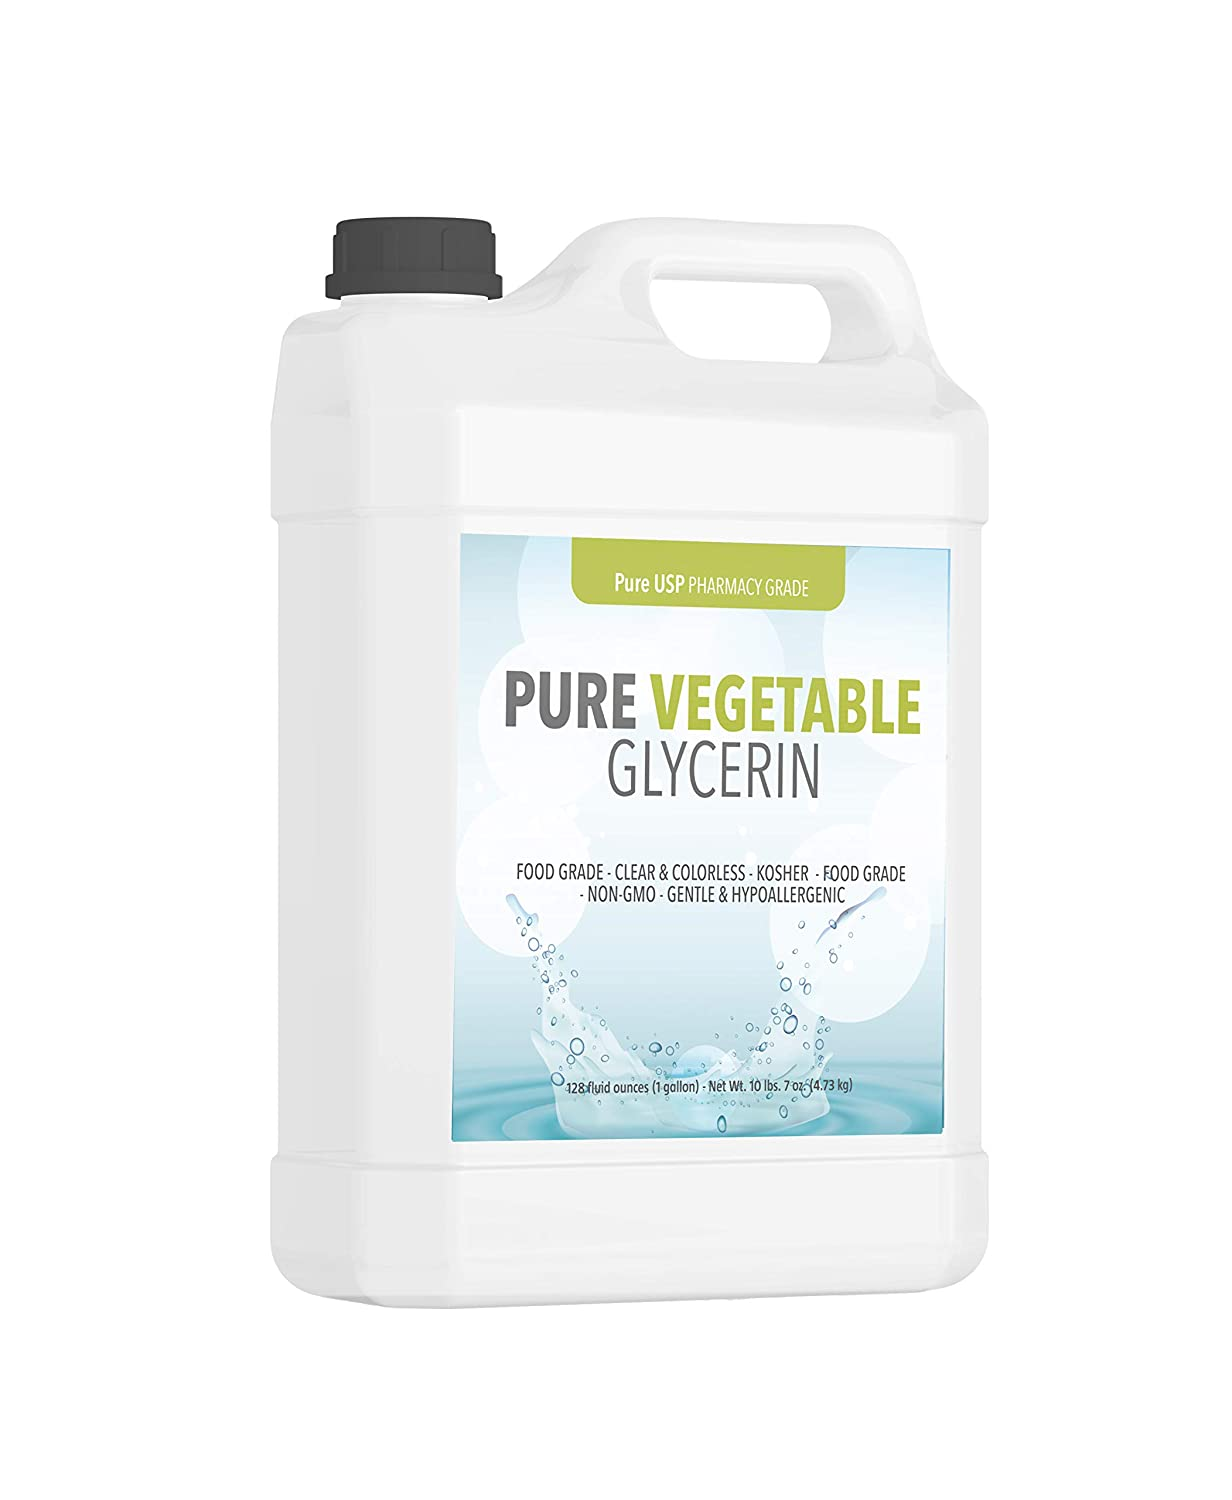 Vegetable Glycerin (1 Gallon) by Pure Organic Ingredients, Food & USP Grade, Kosher, Vegan, Hypoallergenic Moisturizer & Skin Cleanser (also available in 8 oz, 16 oz, 1/2 gallon)